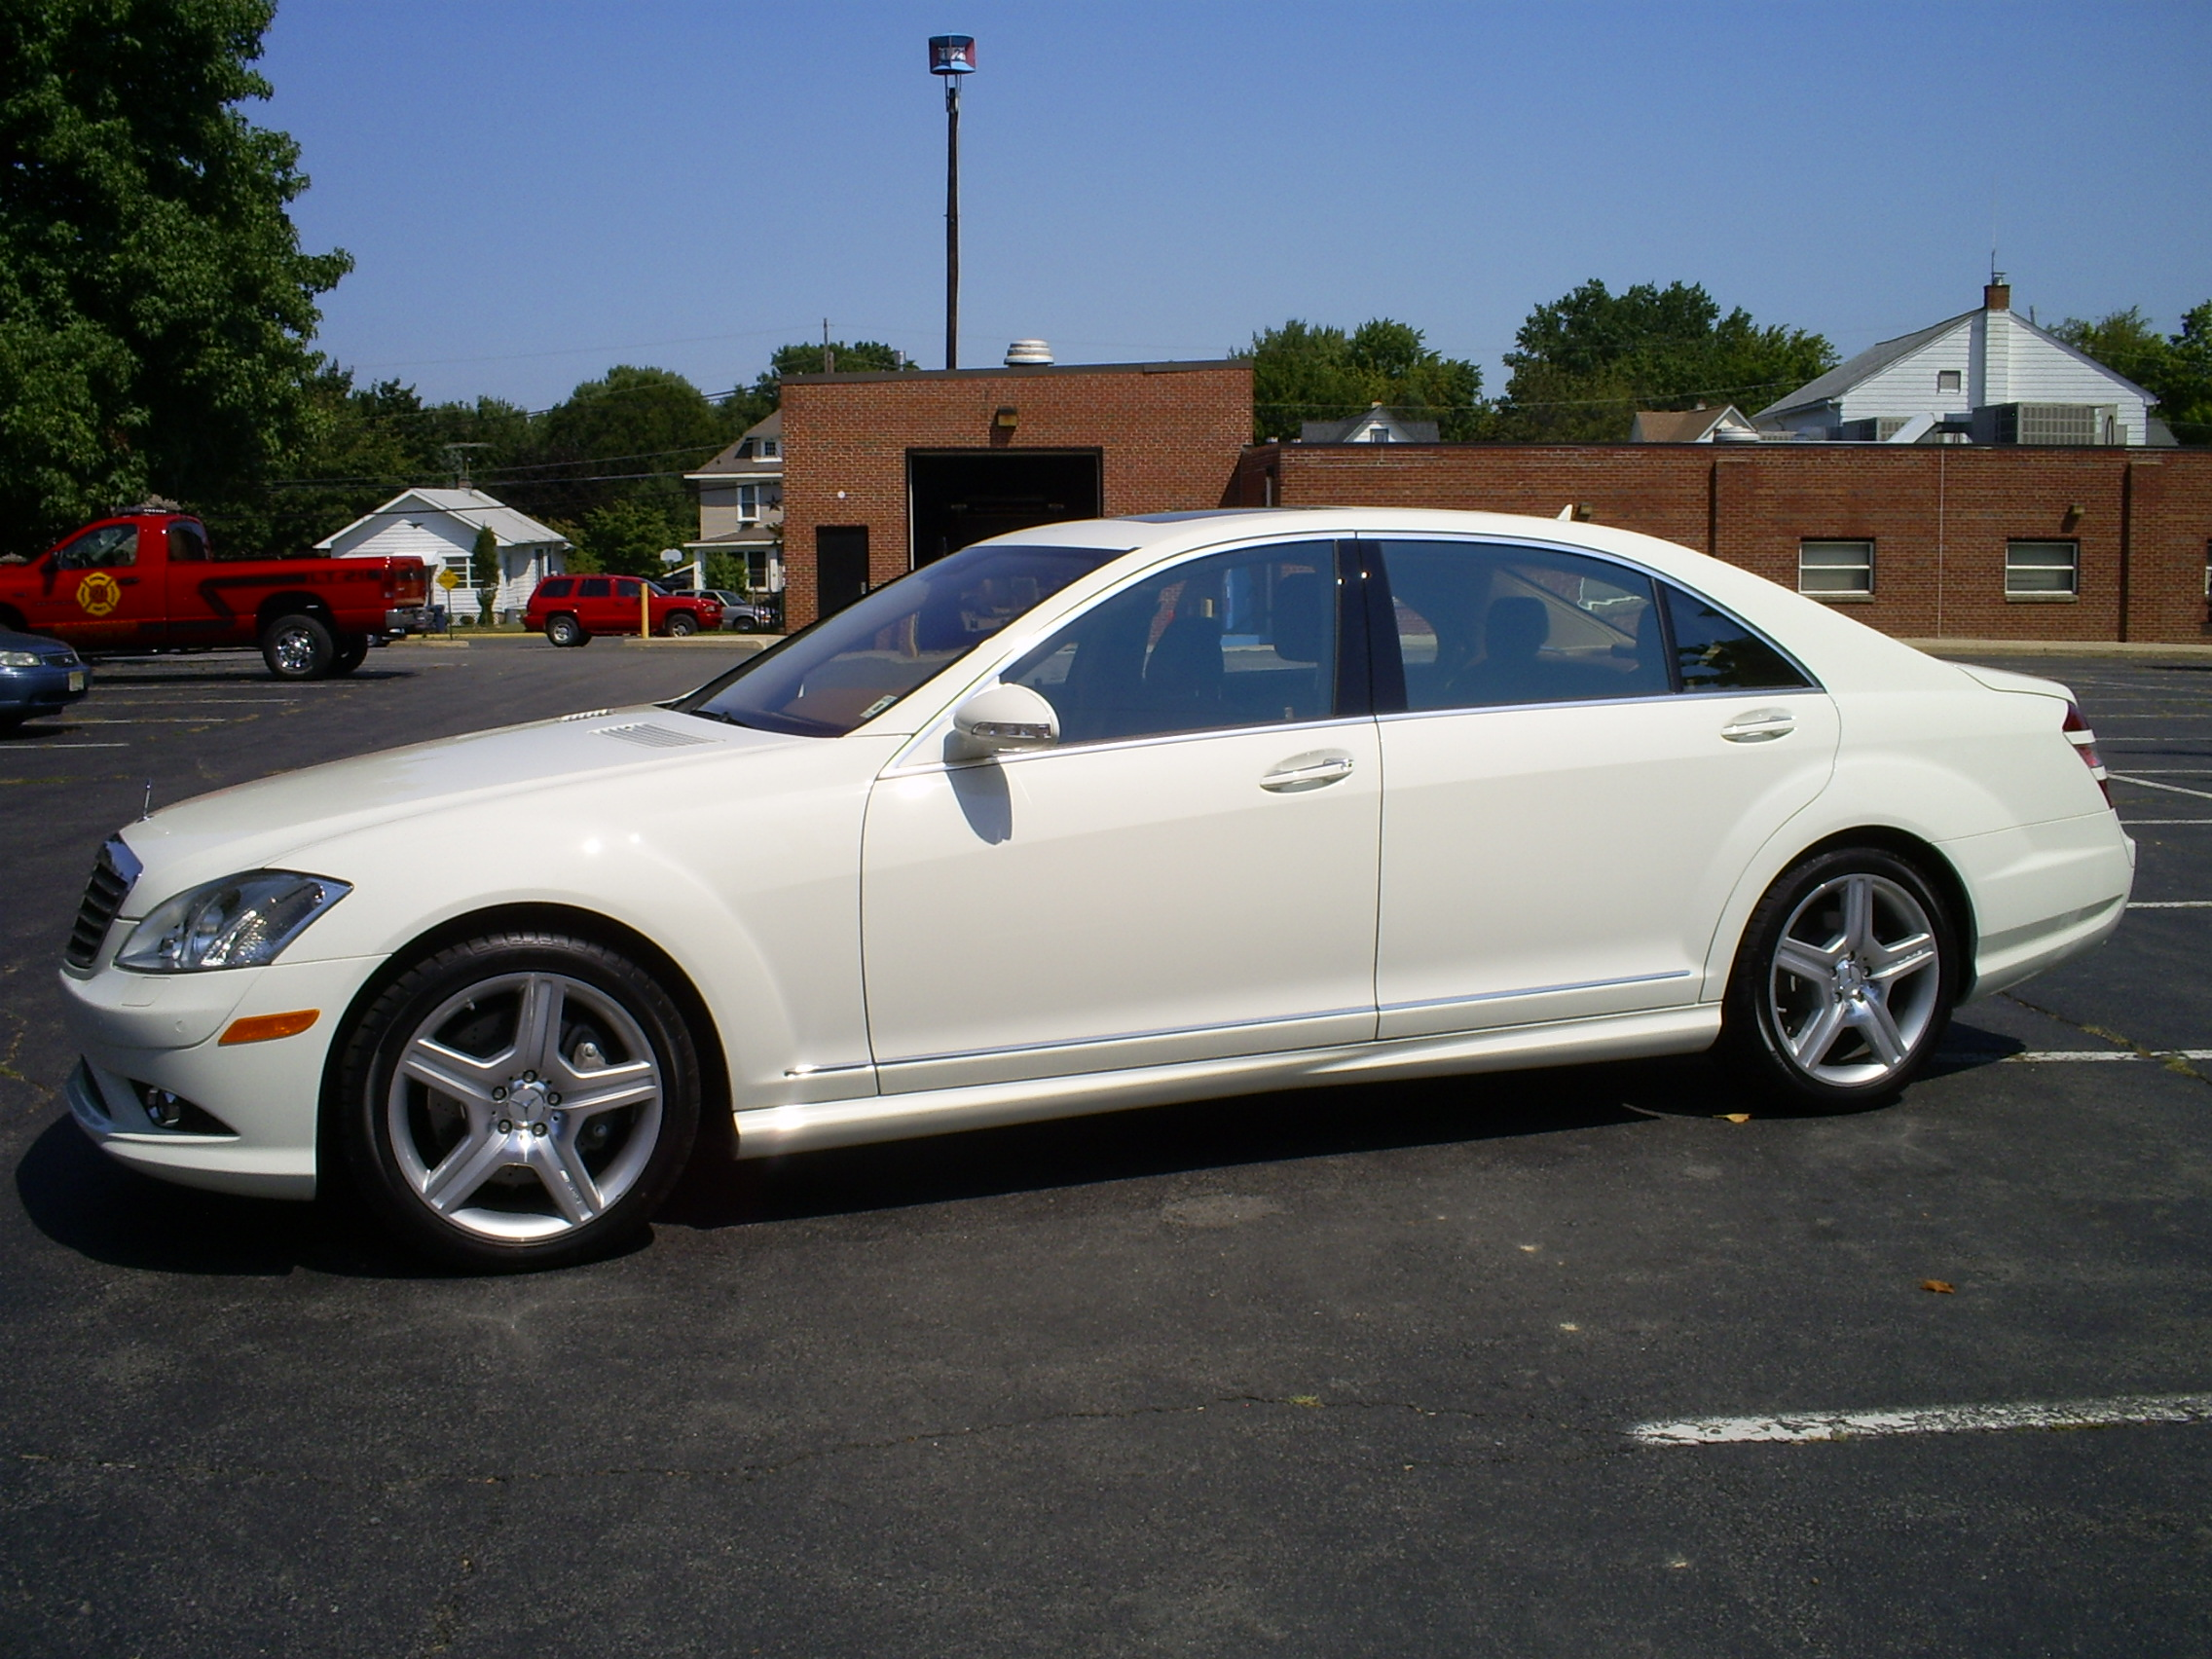 Mercedes benz s 550 picture 3 reviews news specs for Mercedes benz 550s